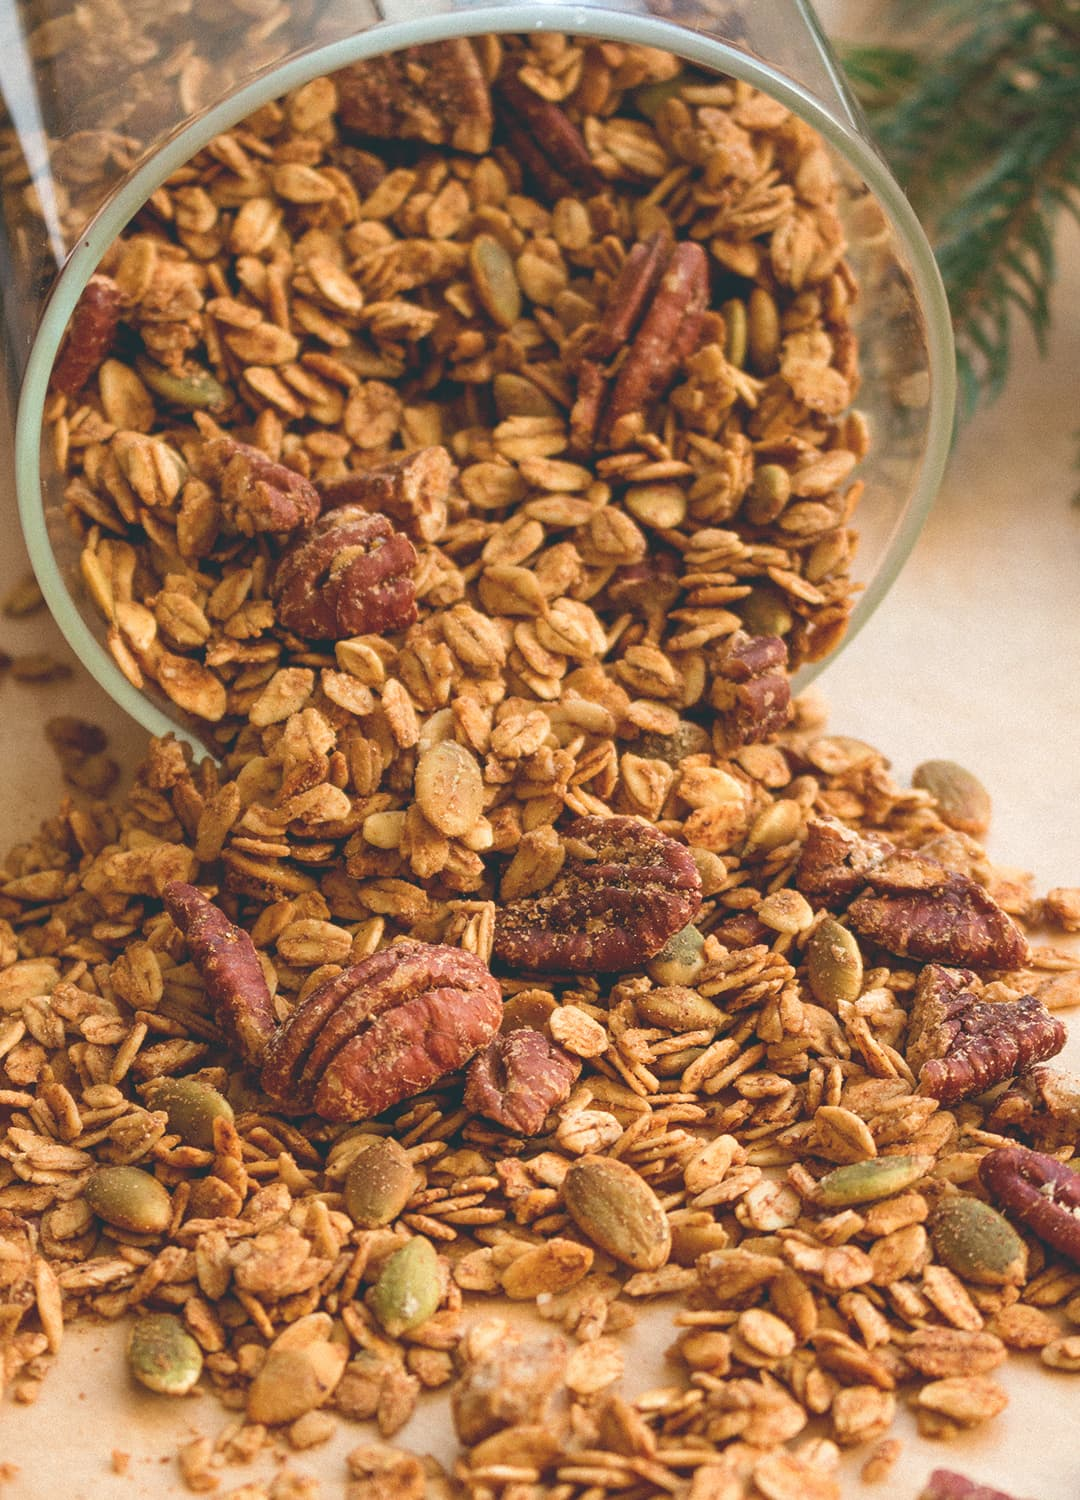 12 Christmas Recipes You Need to Make This Year: Gingerbread Granola - delicious and healthy alternative to store bought granola that's usually full of sugar. I love this recipe! Gingerbread flavored granola is heavenly, it's the ultimate Christmas snack. | thehealthfulideas.com